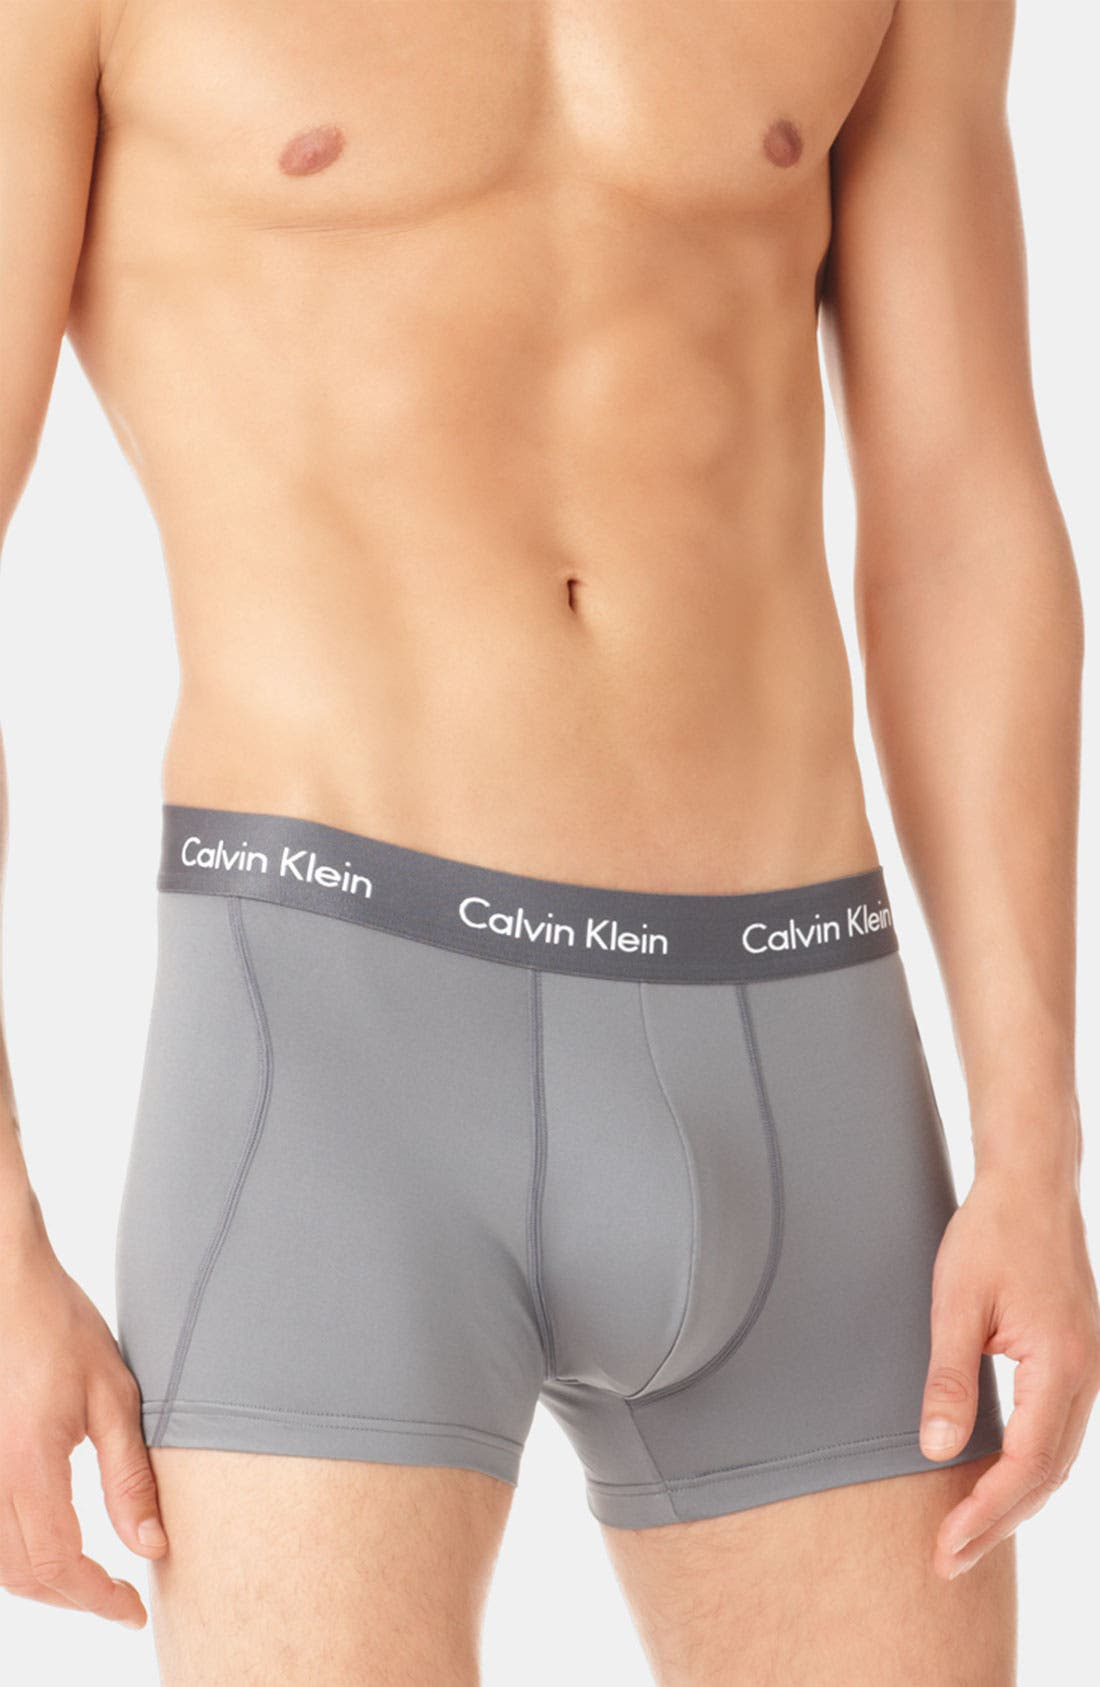 Alternate Image 1 Selected - Calvin Klein Microfiber Stretch Trunks (Assorted 2-Pack)(Online Exclusive)